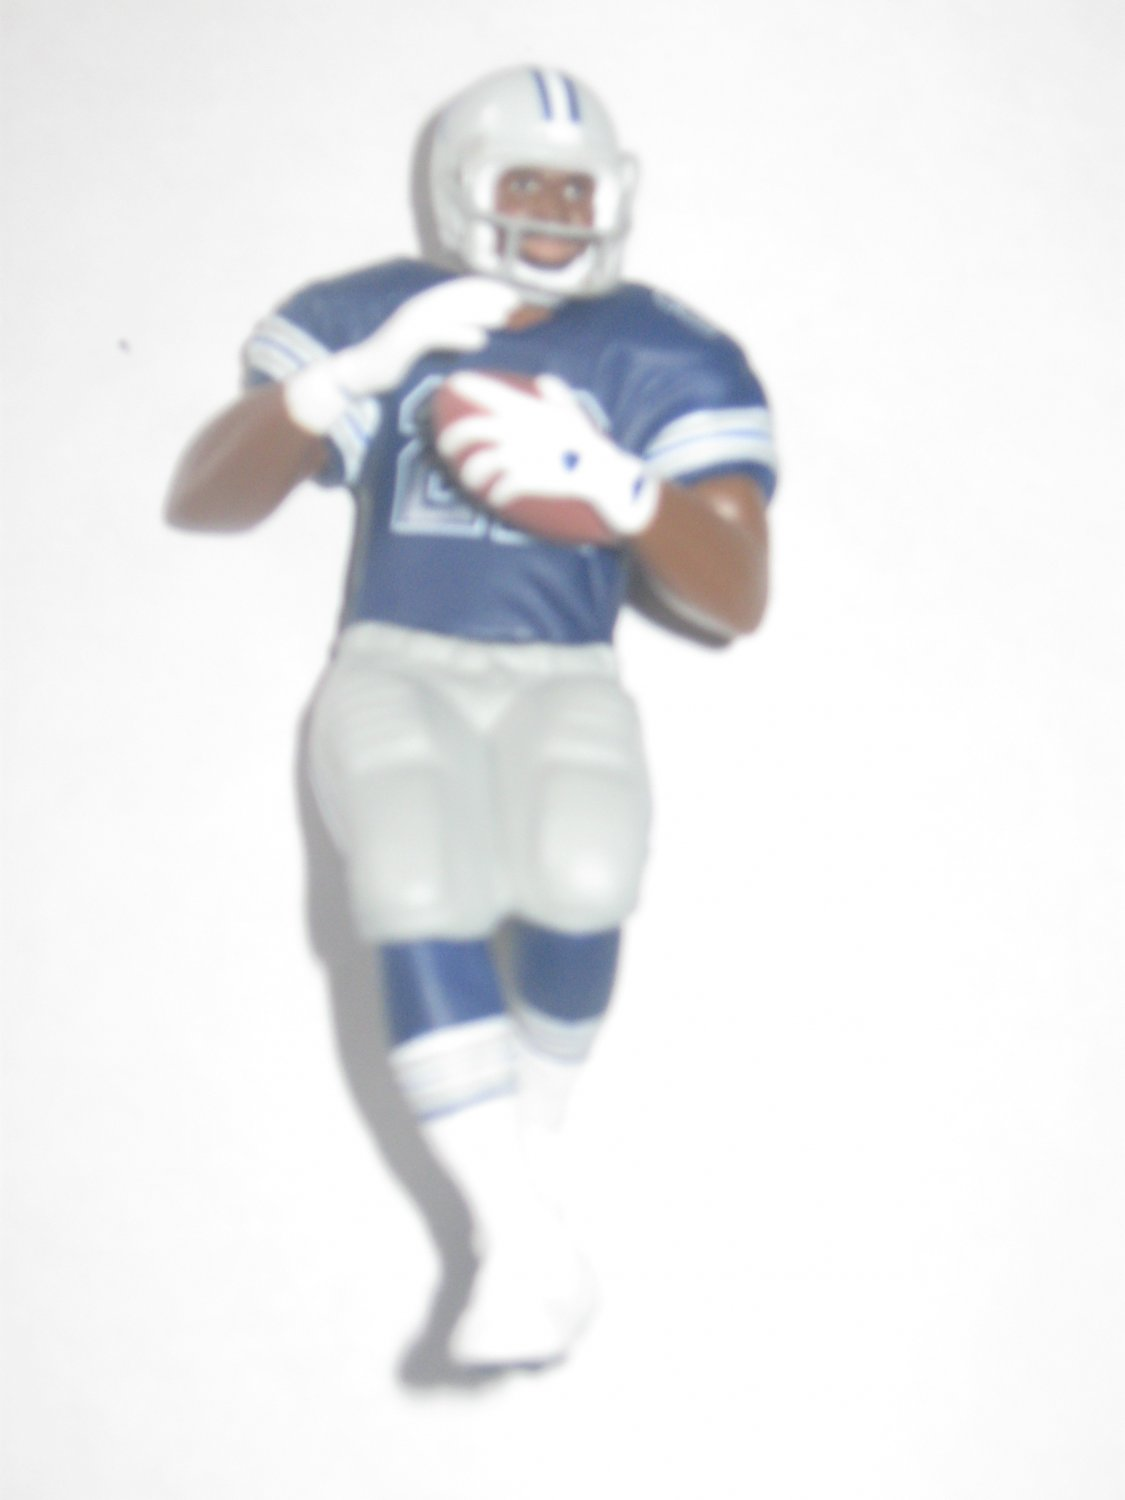 Hallmark Emmitt Smith Keepsake Ornament with trading card